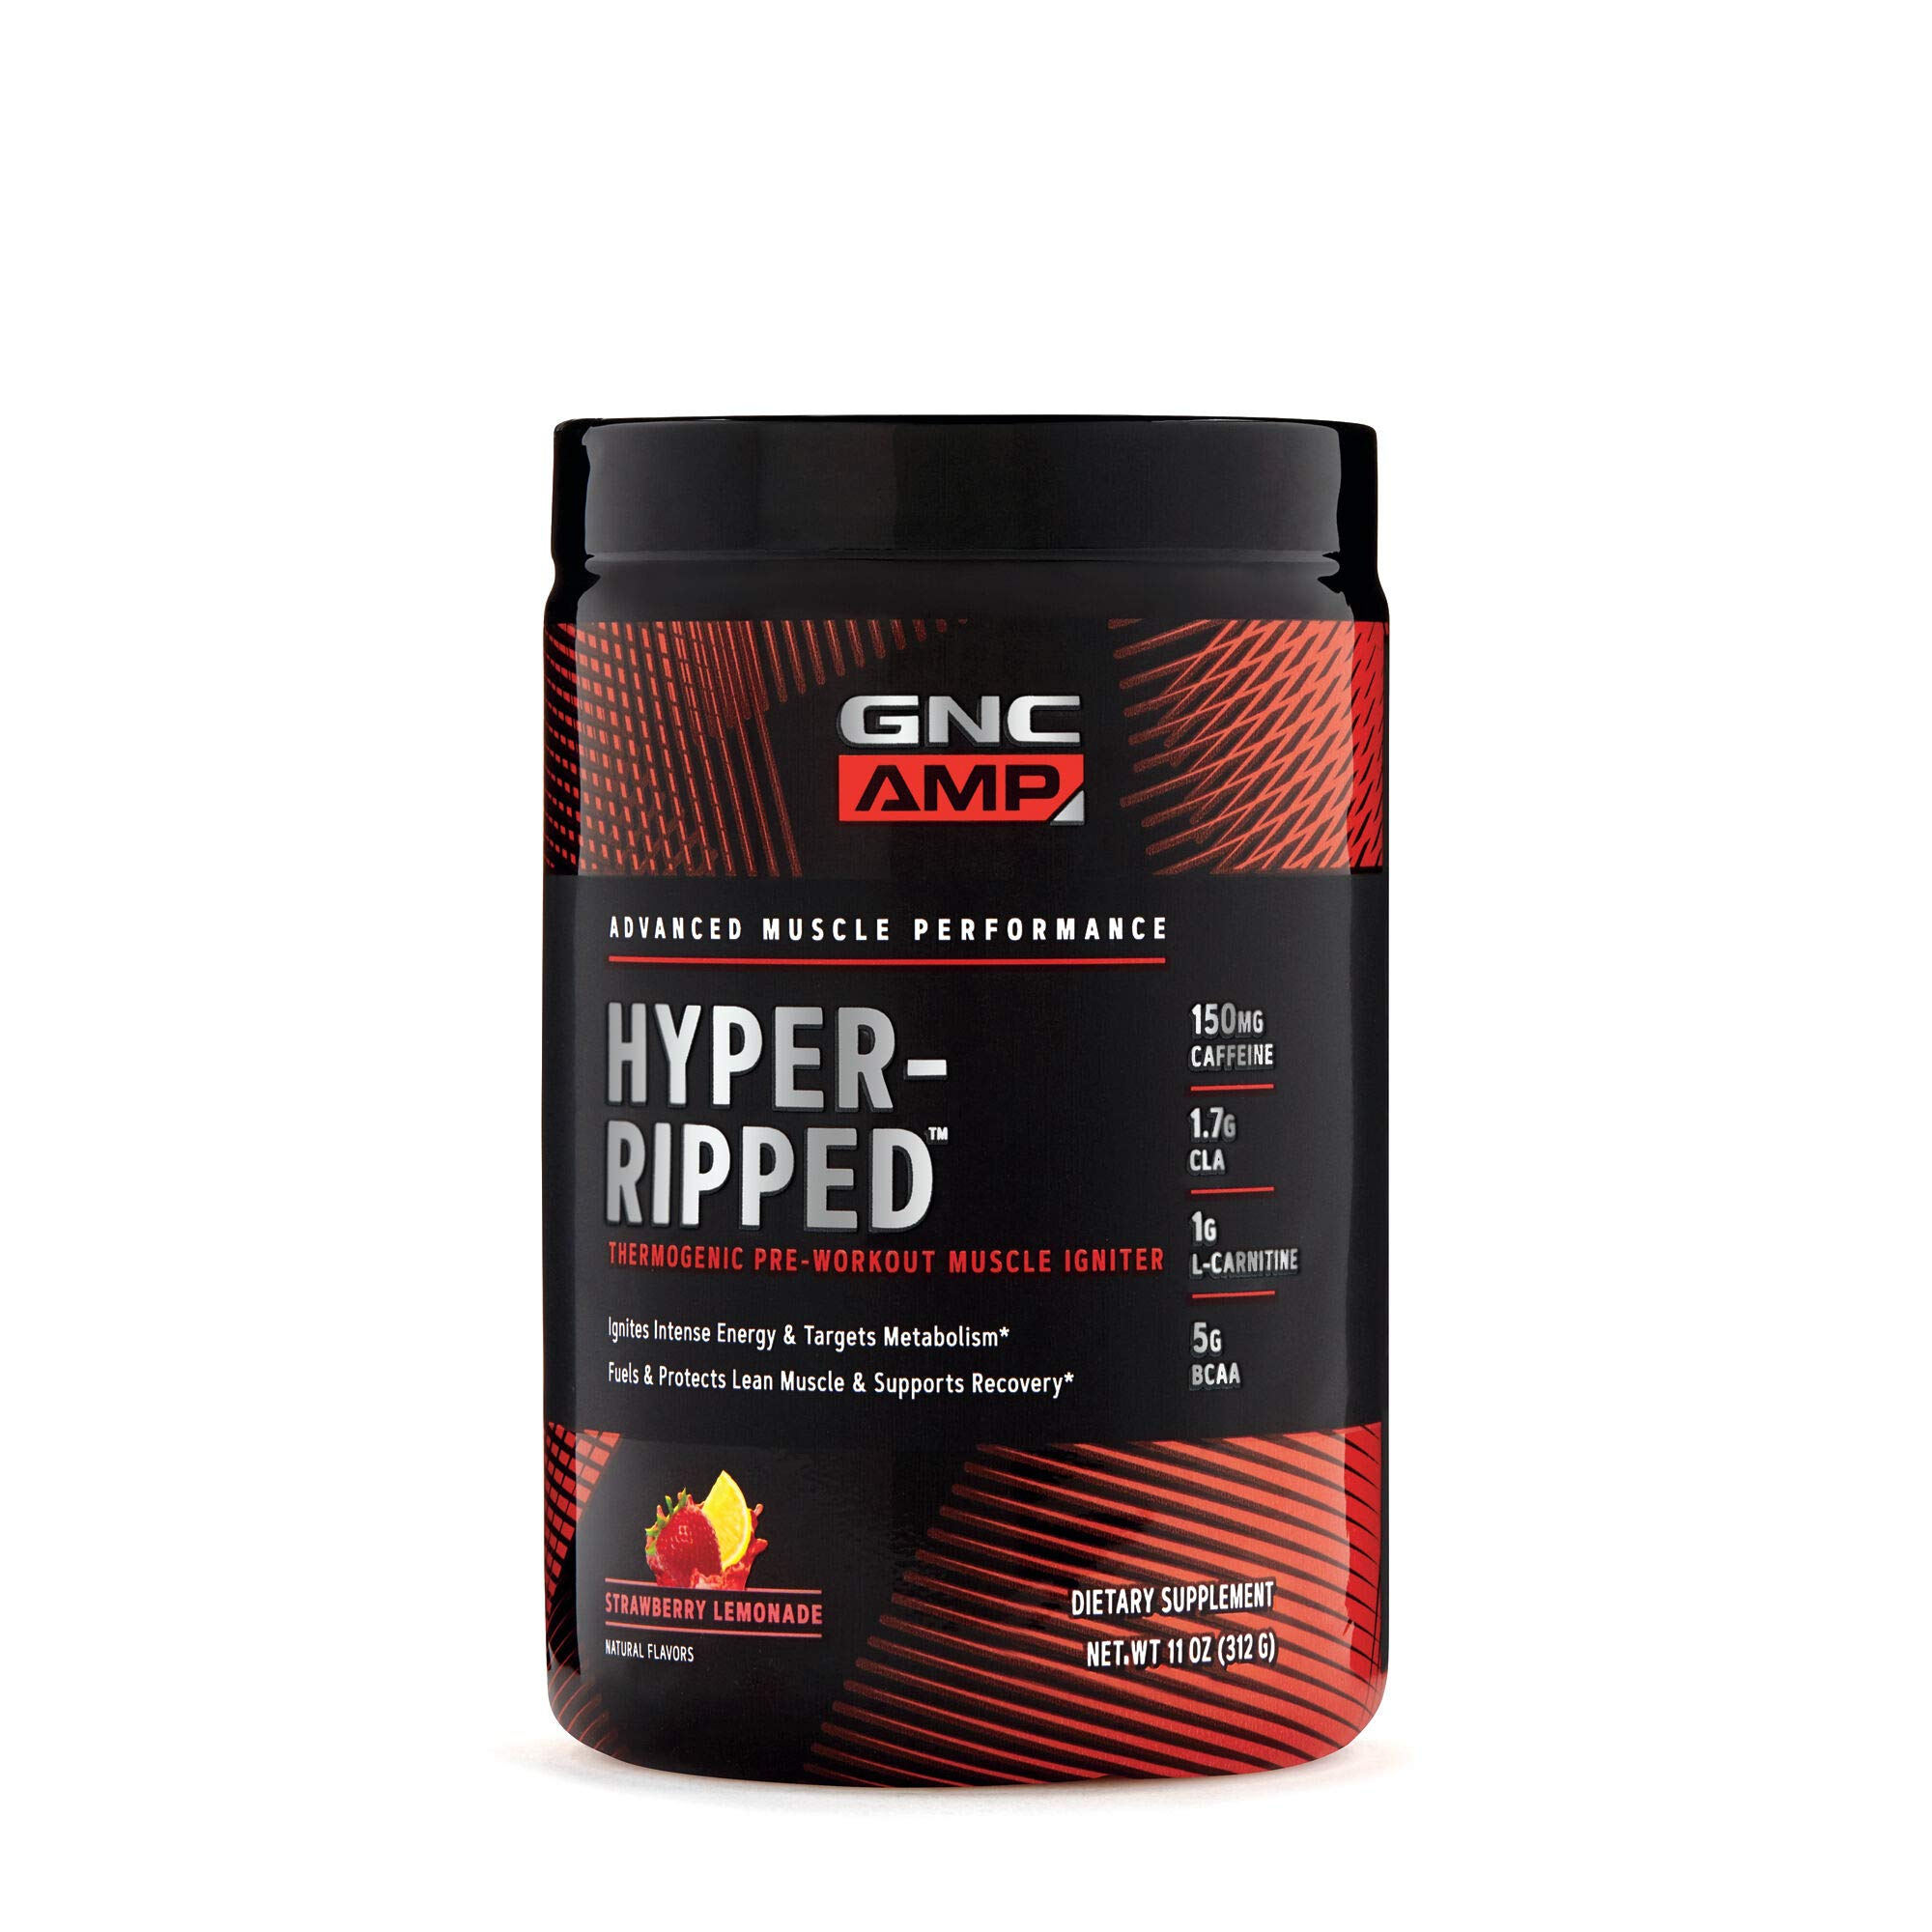 GNC AMP Hyper-Ripped, Strawberry Lemonade, 24 Servings, Thermogenic Pre-Workout by GNC